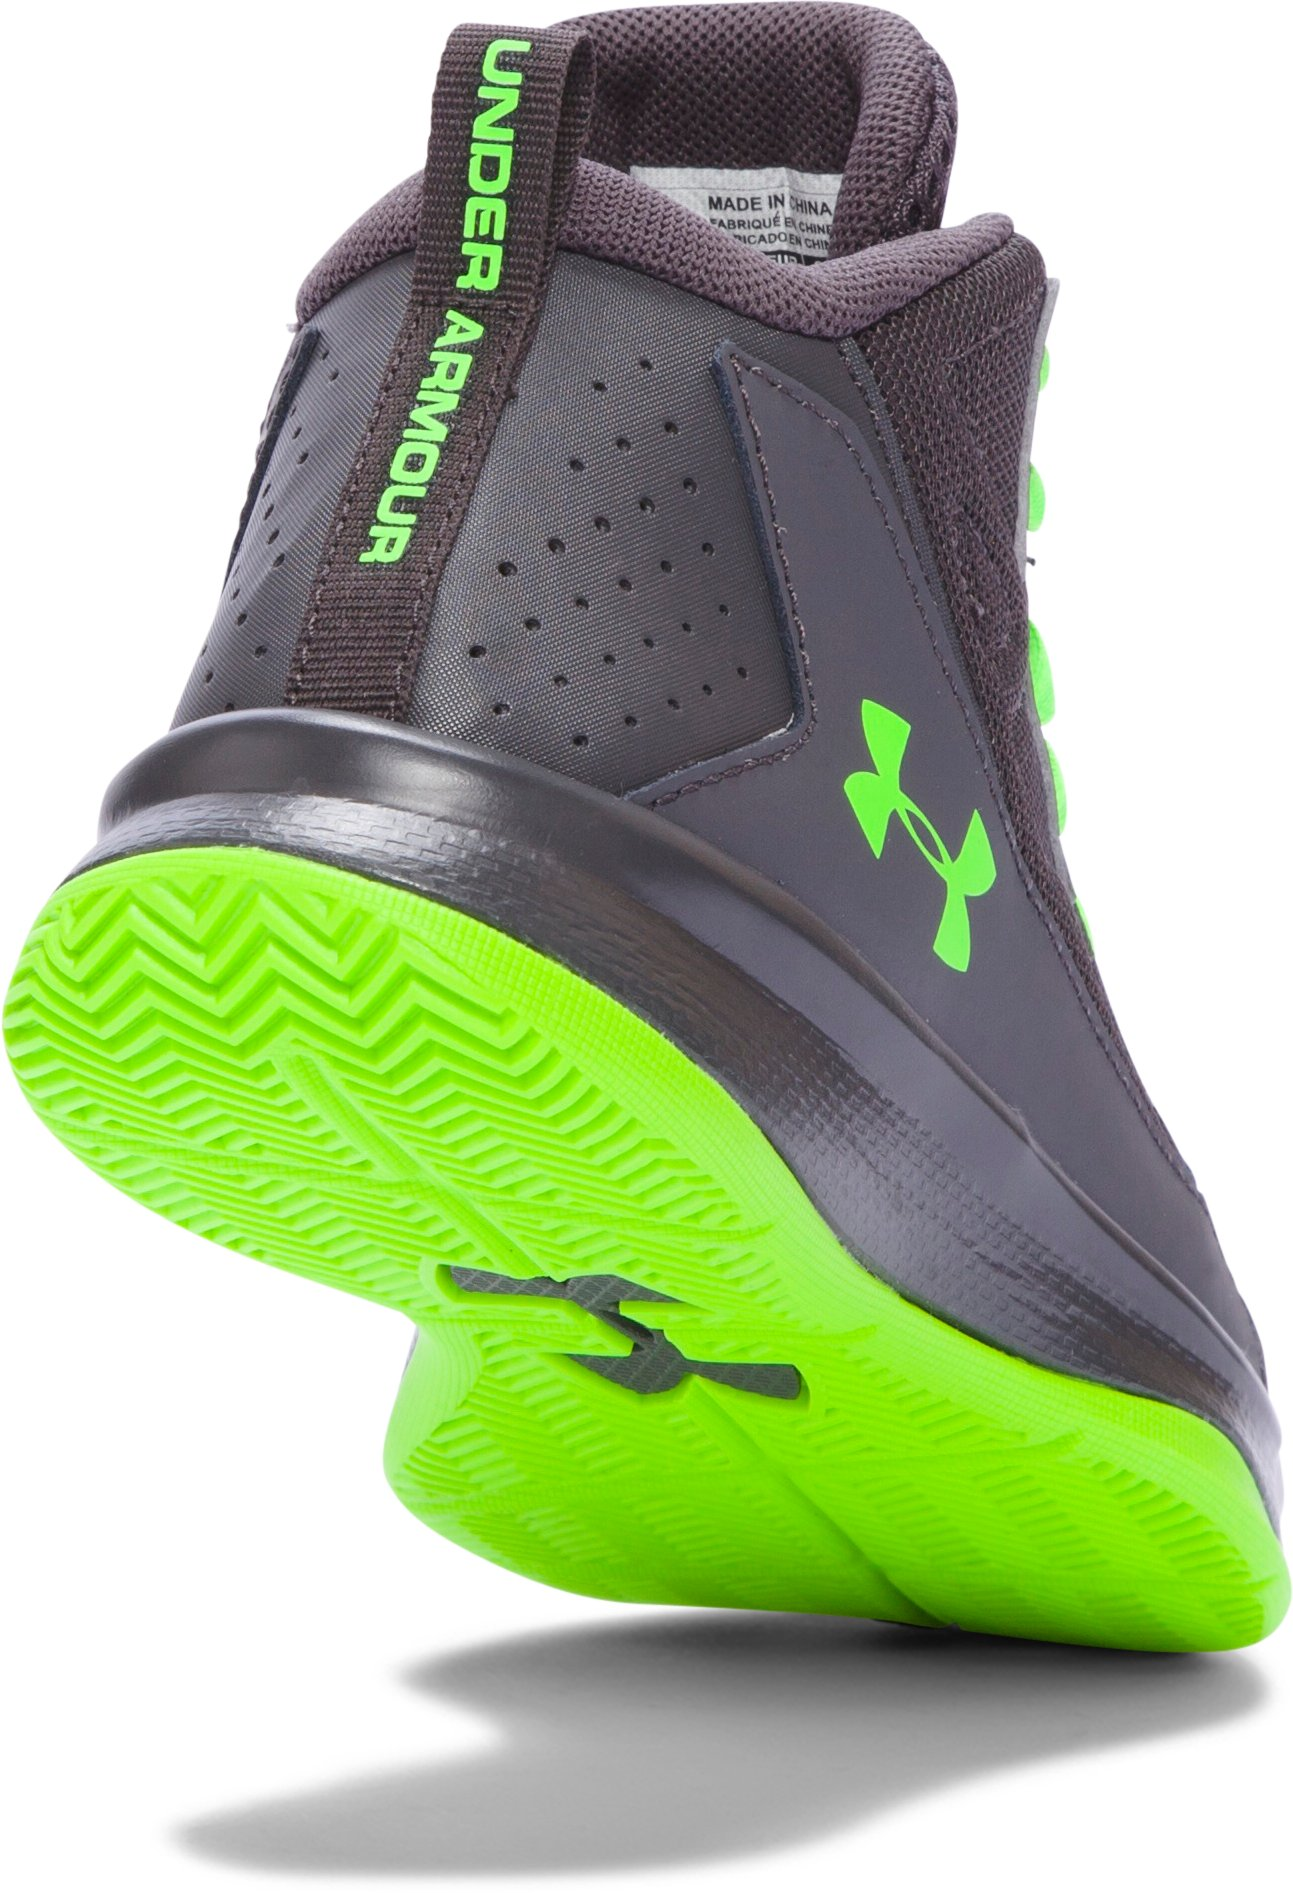 Boys' Pre-School UA Jet Mid Basketball Shoes, STEALTH GRAY